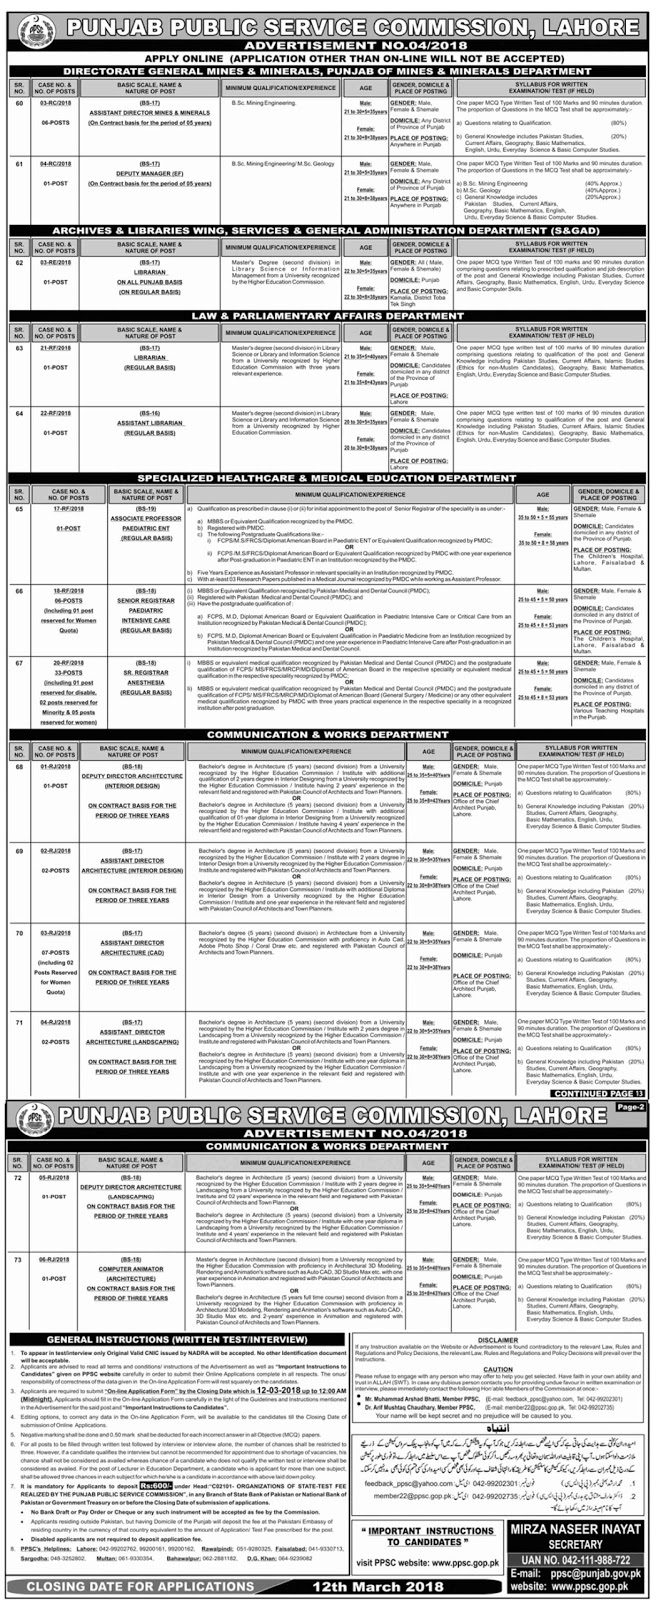 Jobs In Punjab Public Service Commission PPSC Lahore 2018 for 64 Vacancies